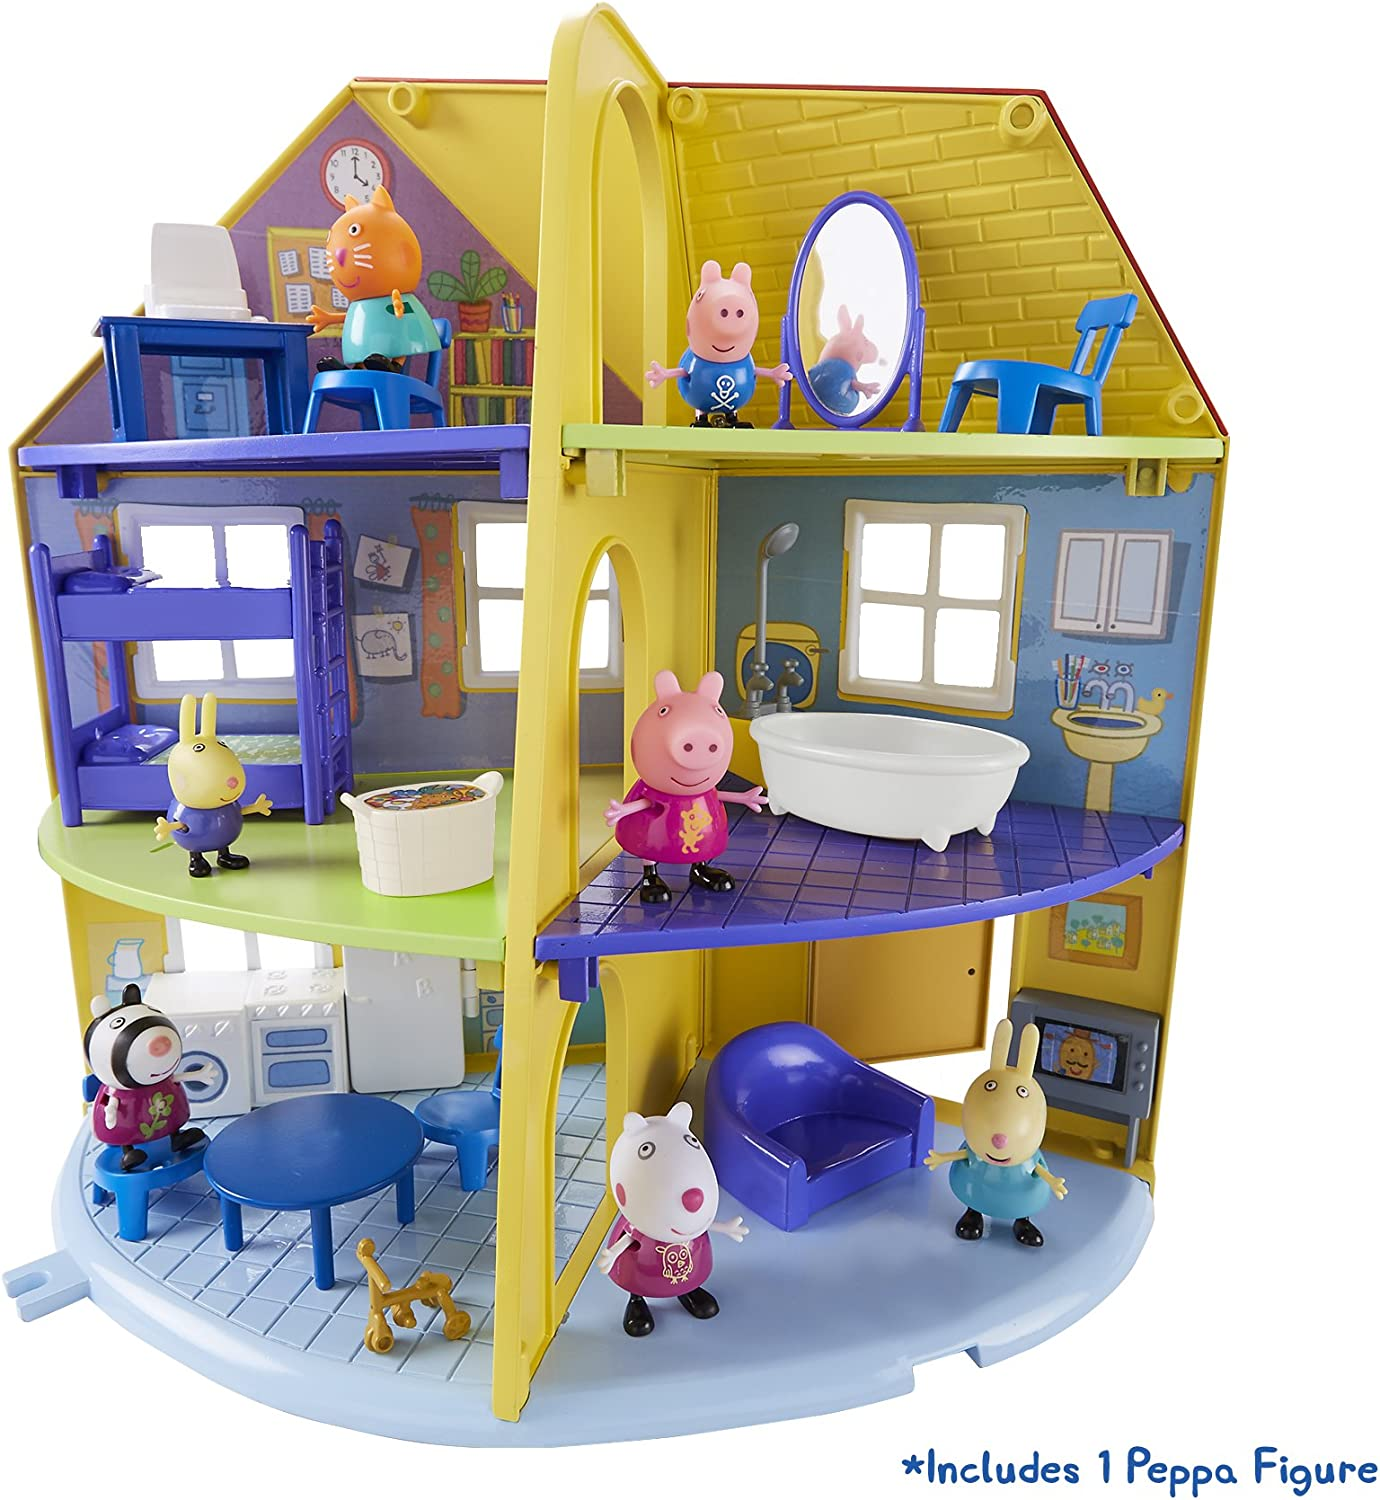 Peppa Pig 06384 Peppa's Family Home Playset Juego de casa Familiar, Multicolor, 0 (Character Options